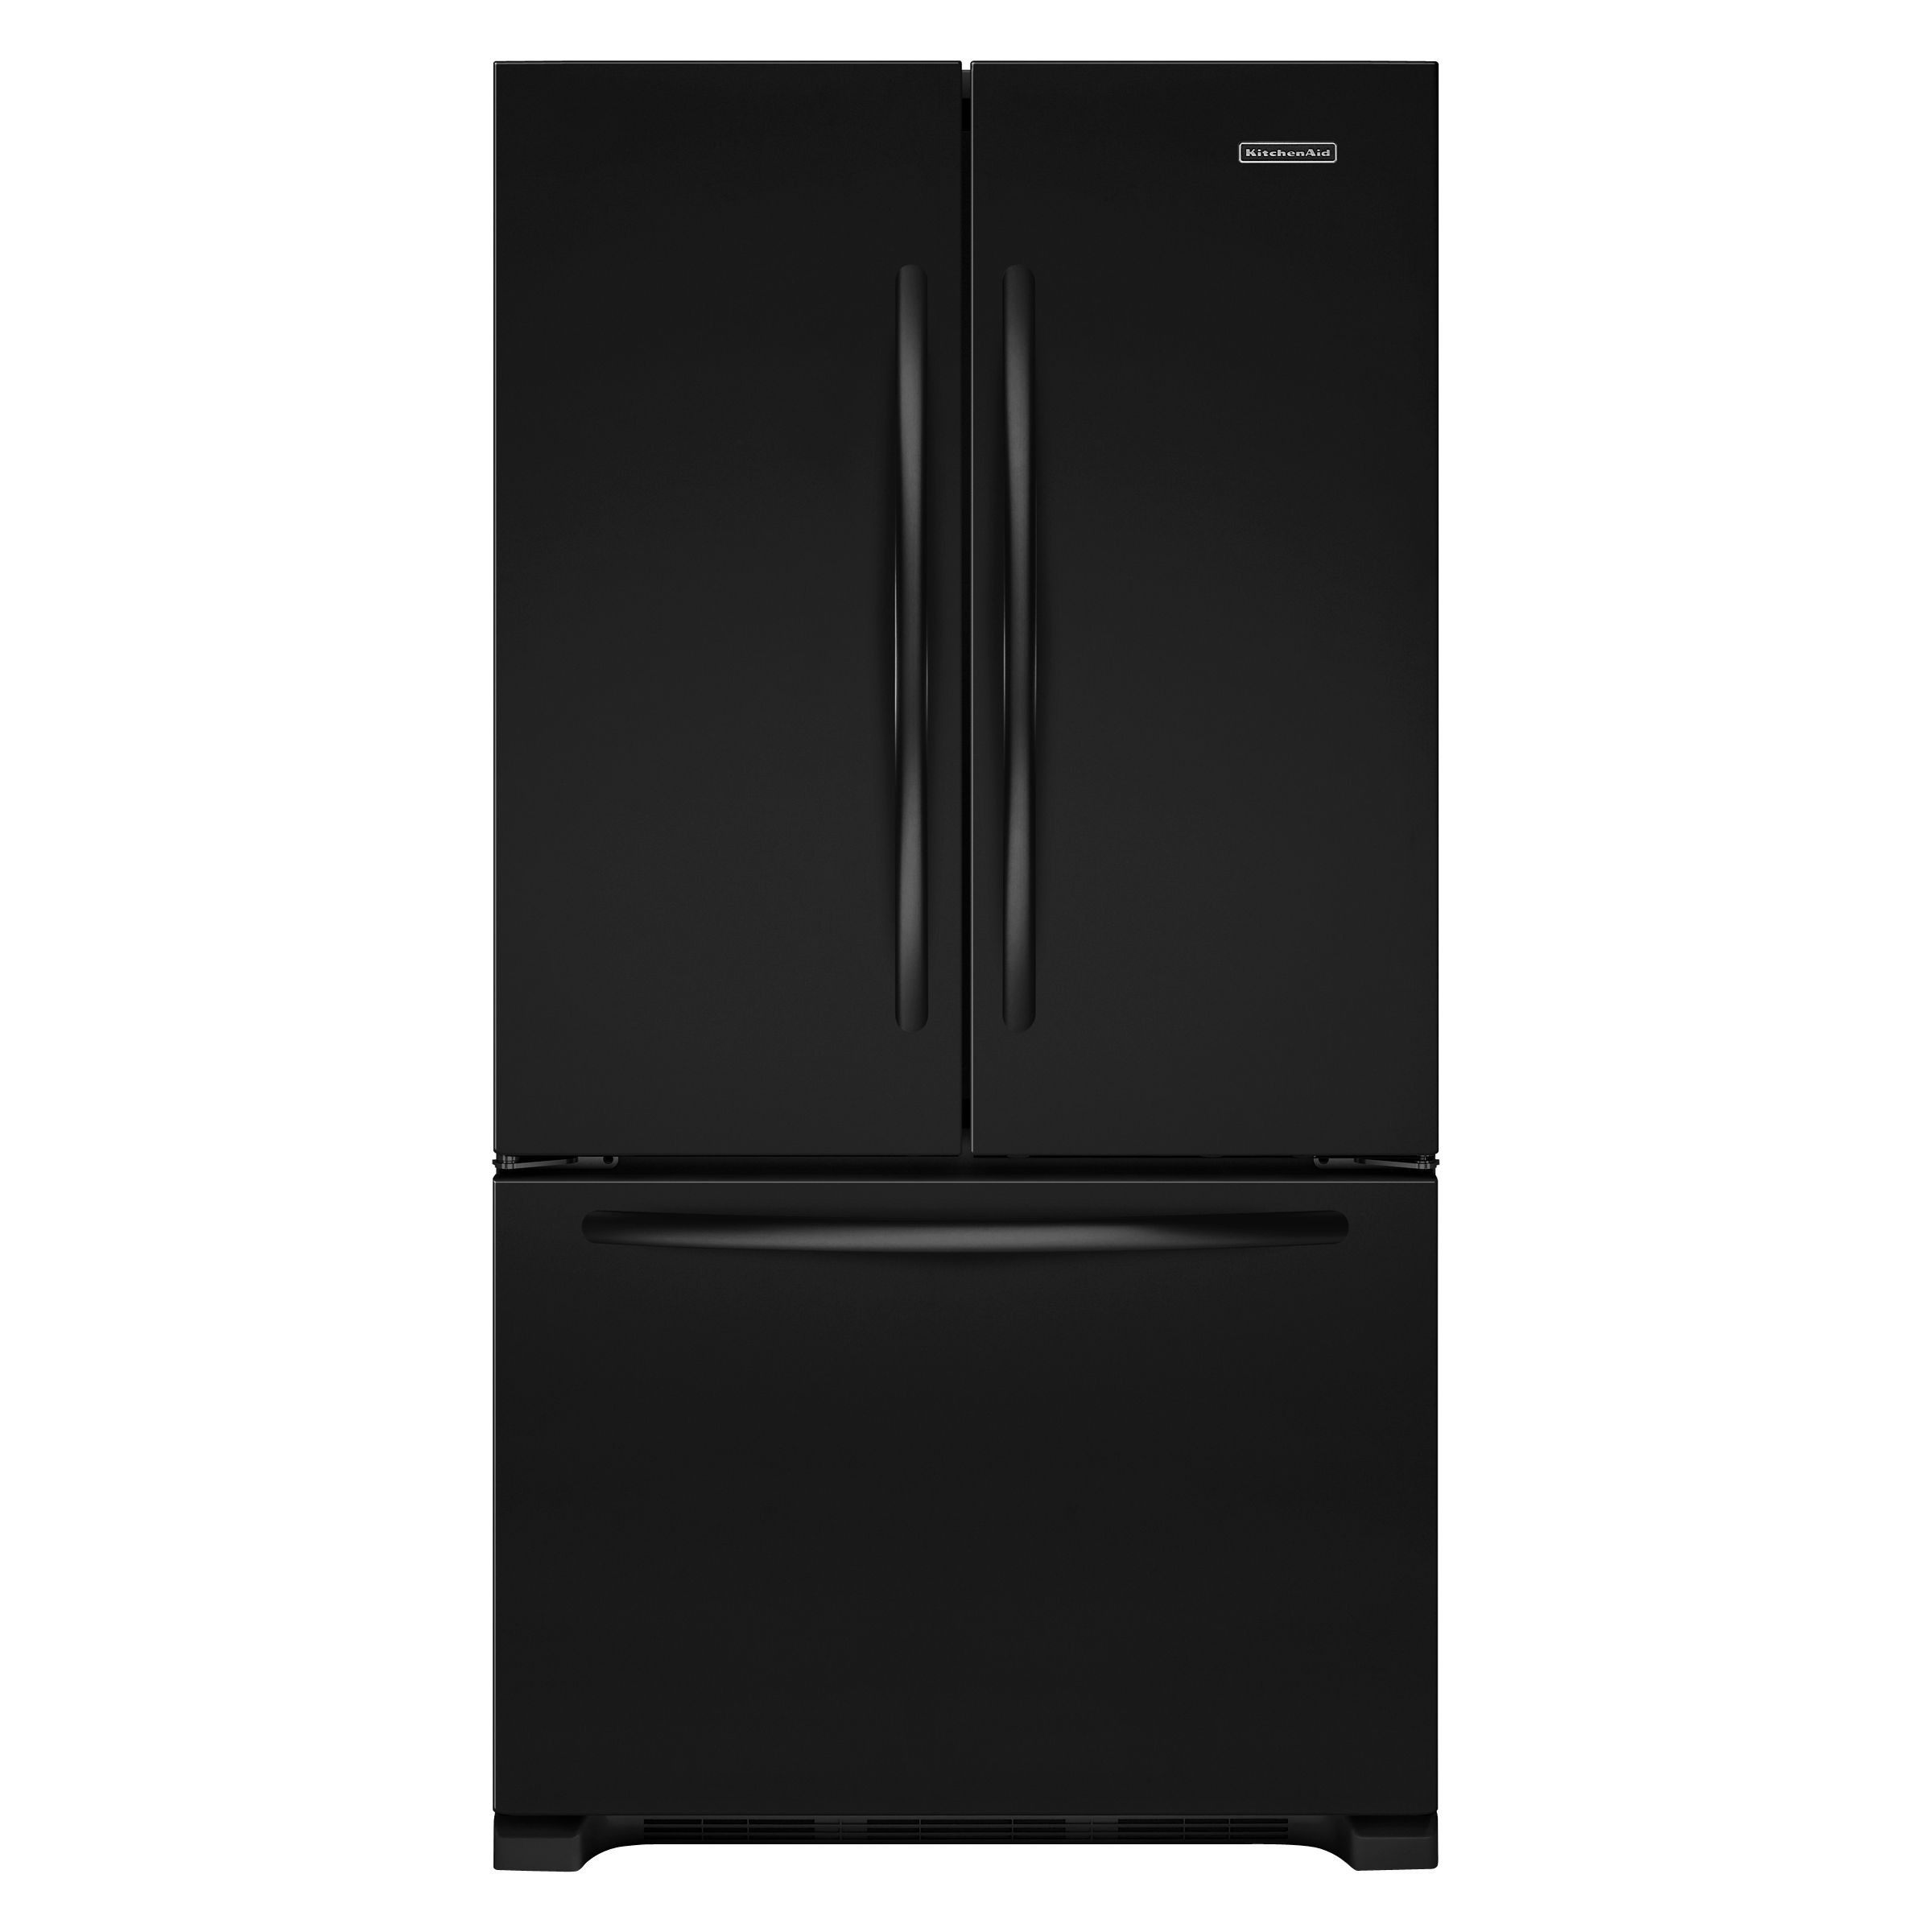 21.8 cu. ft. French-Door Refrigerator w/ Internal Water Dispenser                                                                at mygofer.com